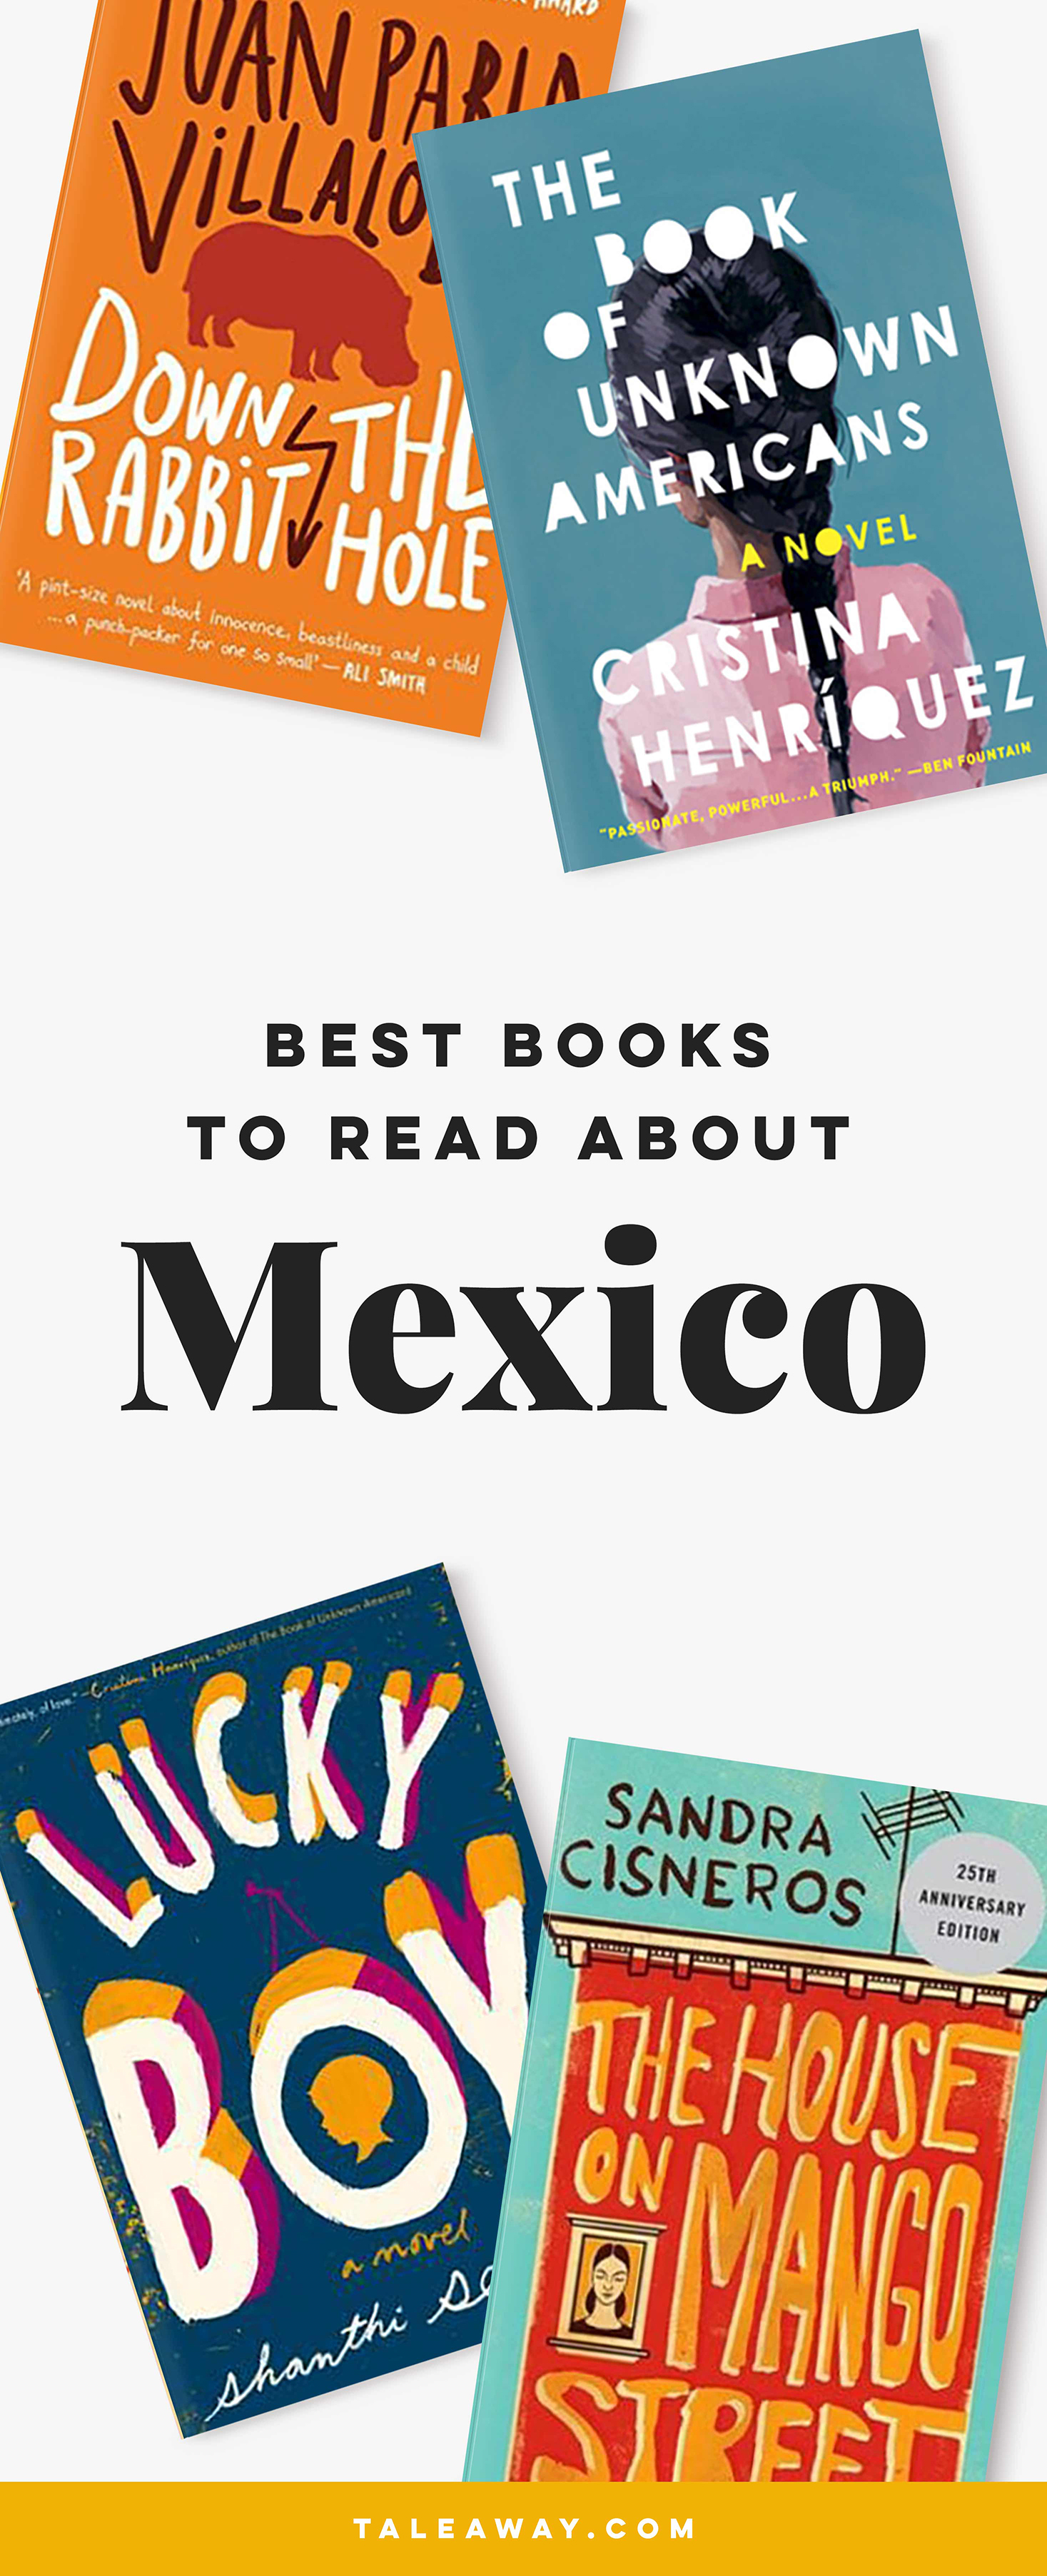 Books Set In Mexico. Mexican books that inspire travel, visit www.taleway.com for books set around the world. mexican books, books about mexico, mexico inspiration, mexico travel, novels set in mexico, mexican novels, books and travel, travel reads, reading list, books around the world, books to read, mexico, books set in different countries